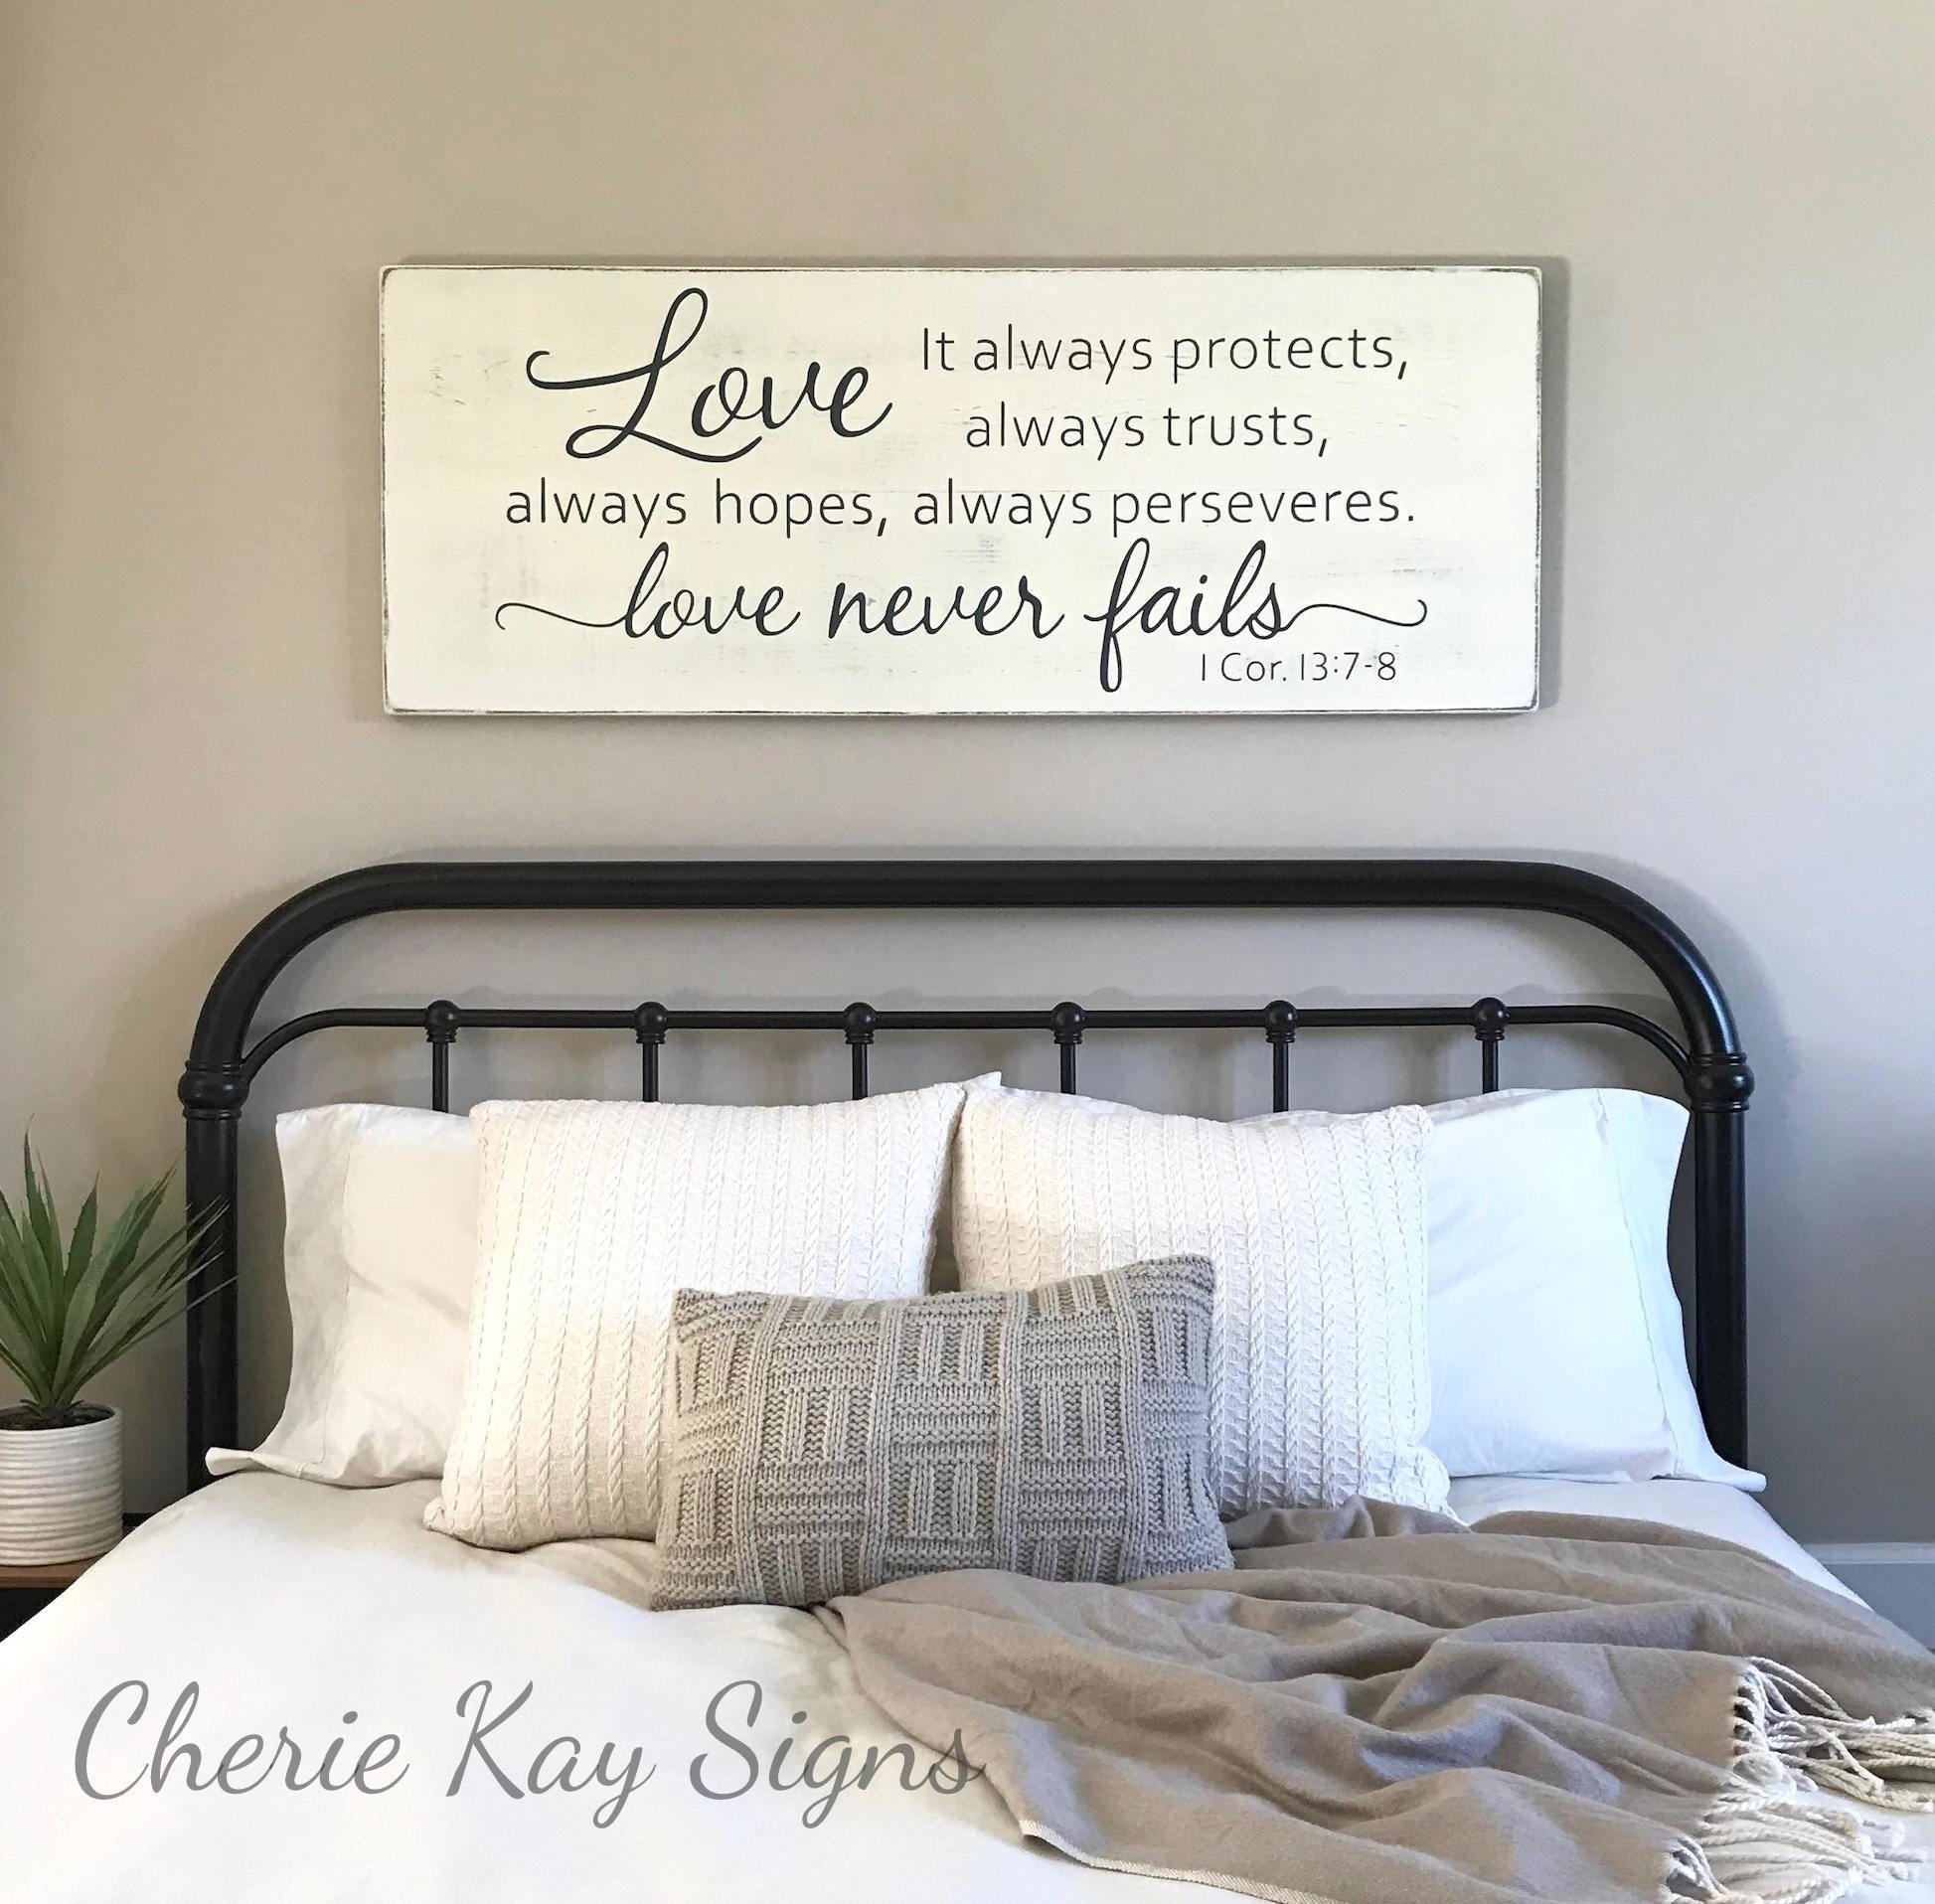 Best Master Bedroom Wall Decor Love Never Fails 1 Corinthians With Pictures